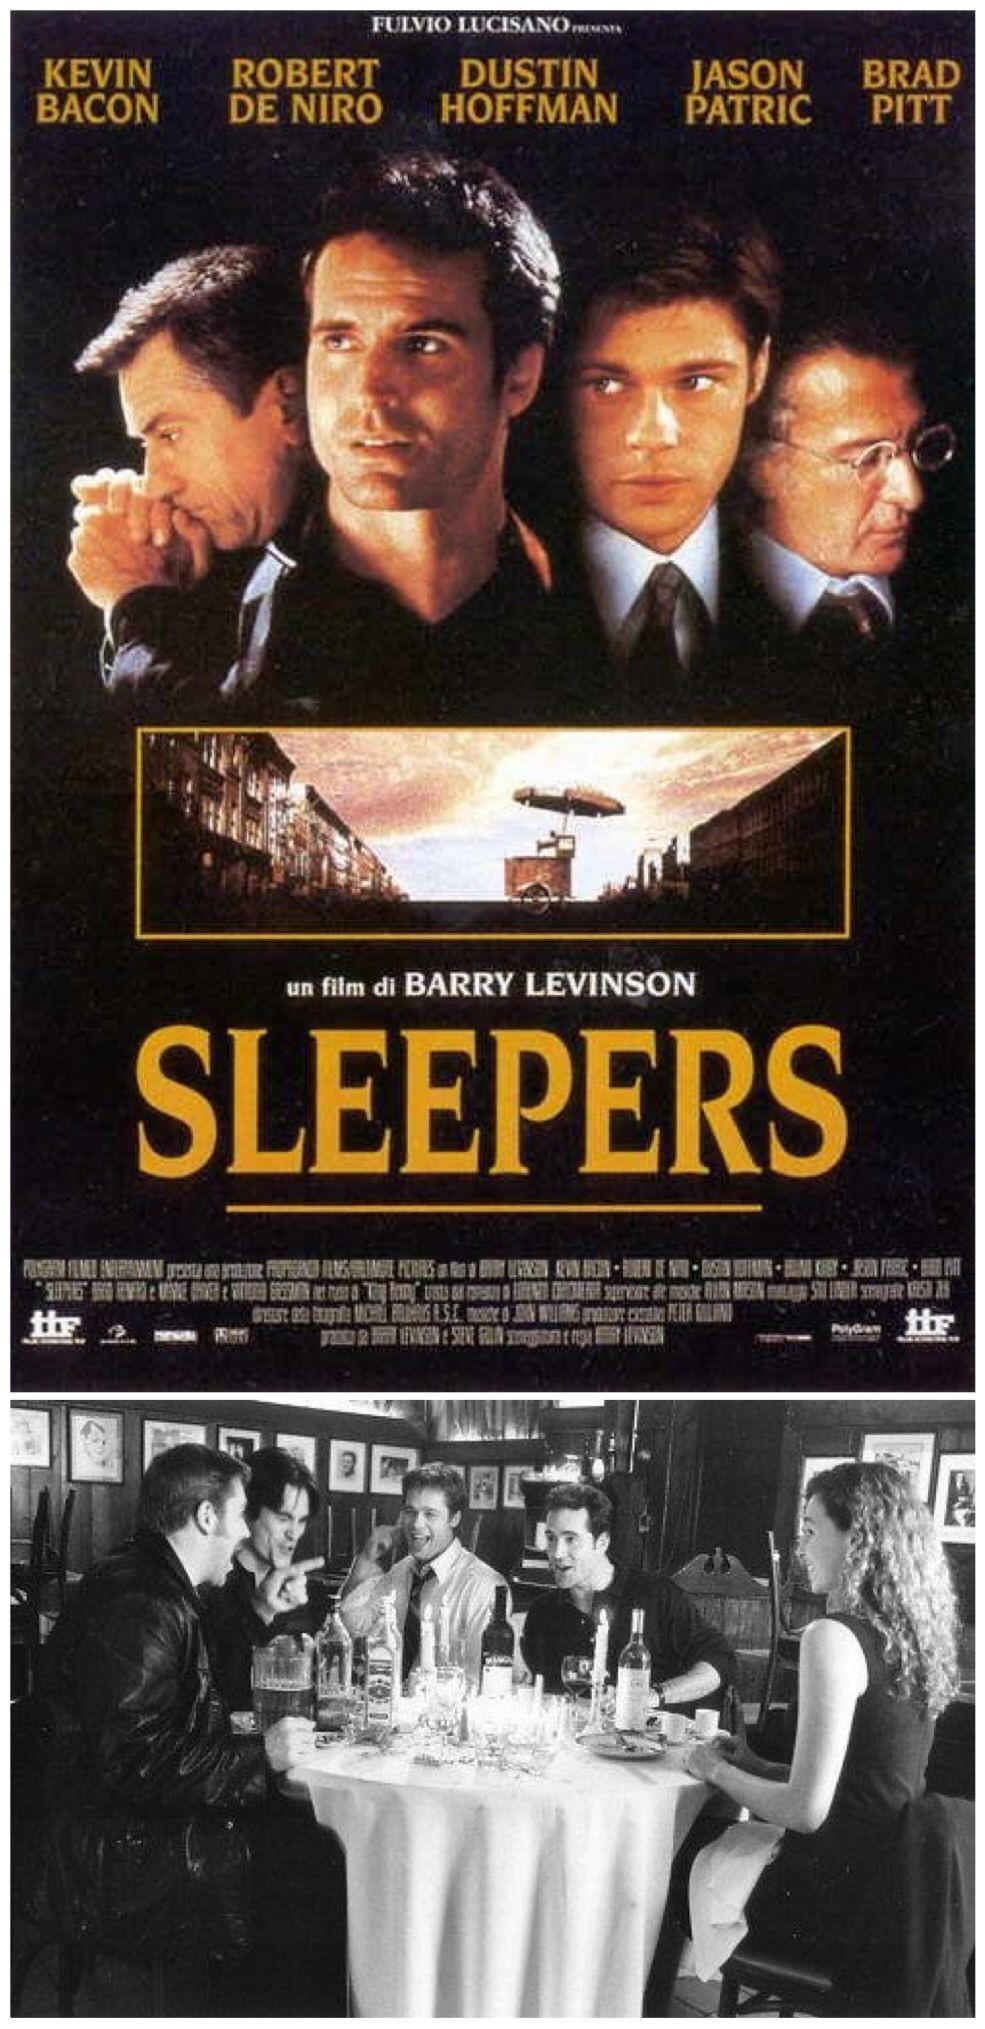 Sleepers 1996 Played Michael Sullivan Sleepers Movie Movie Blog Movie Posters